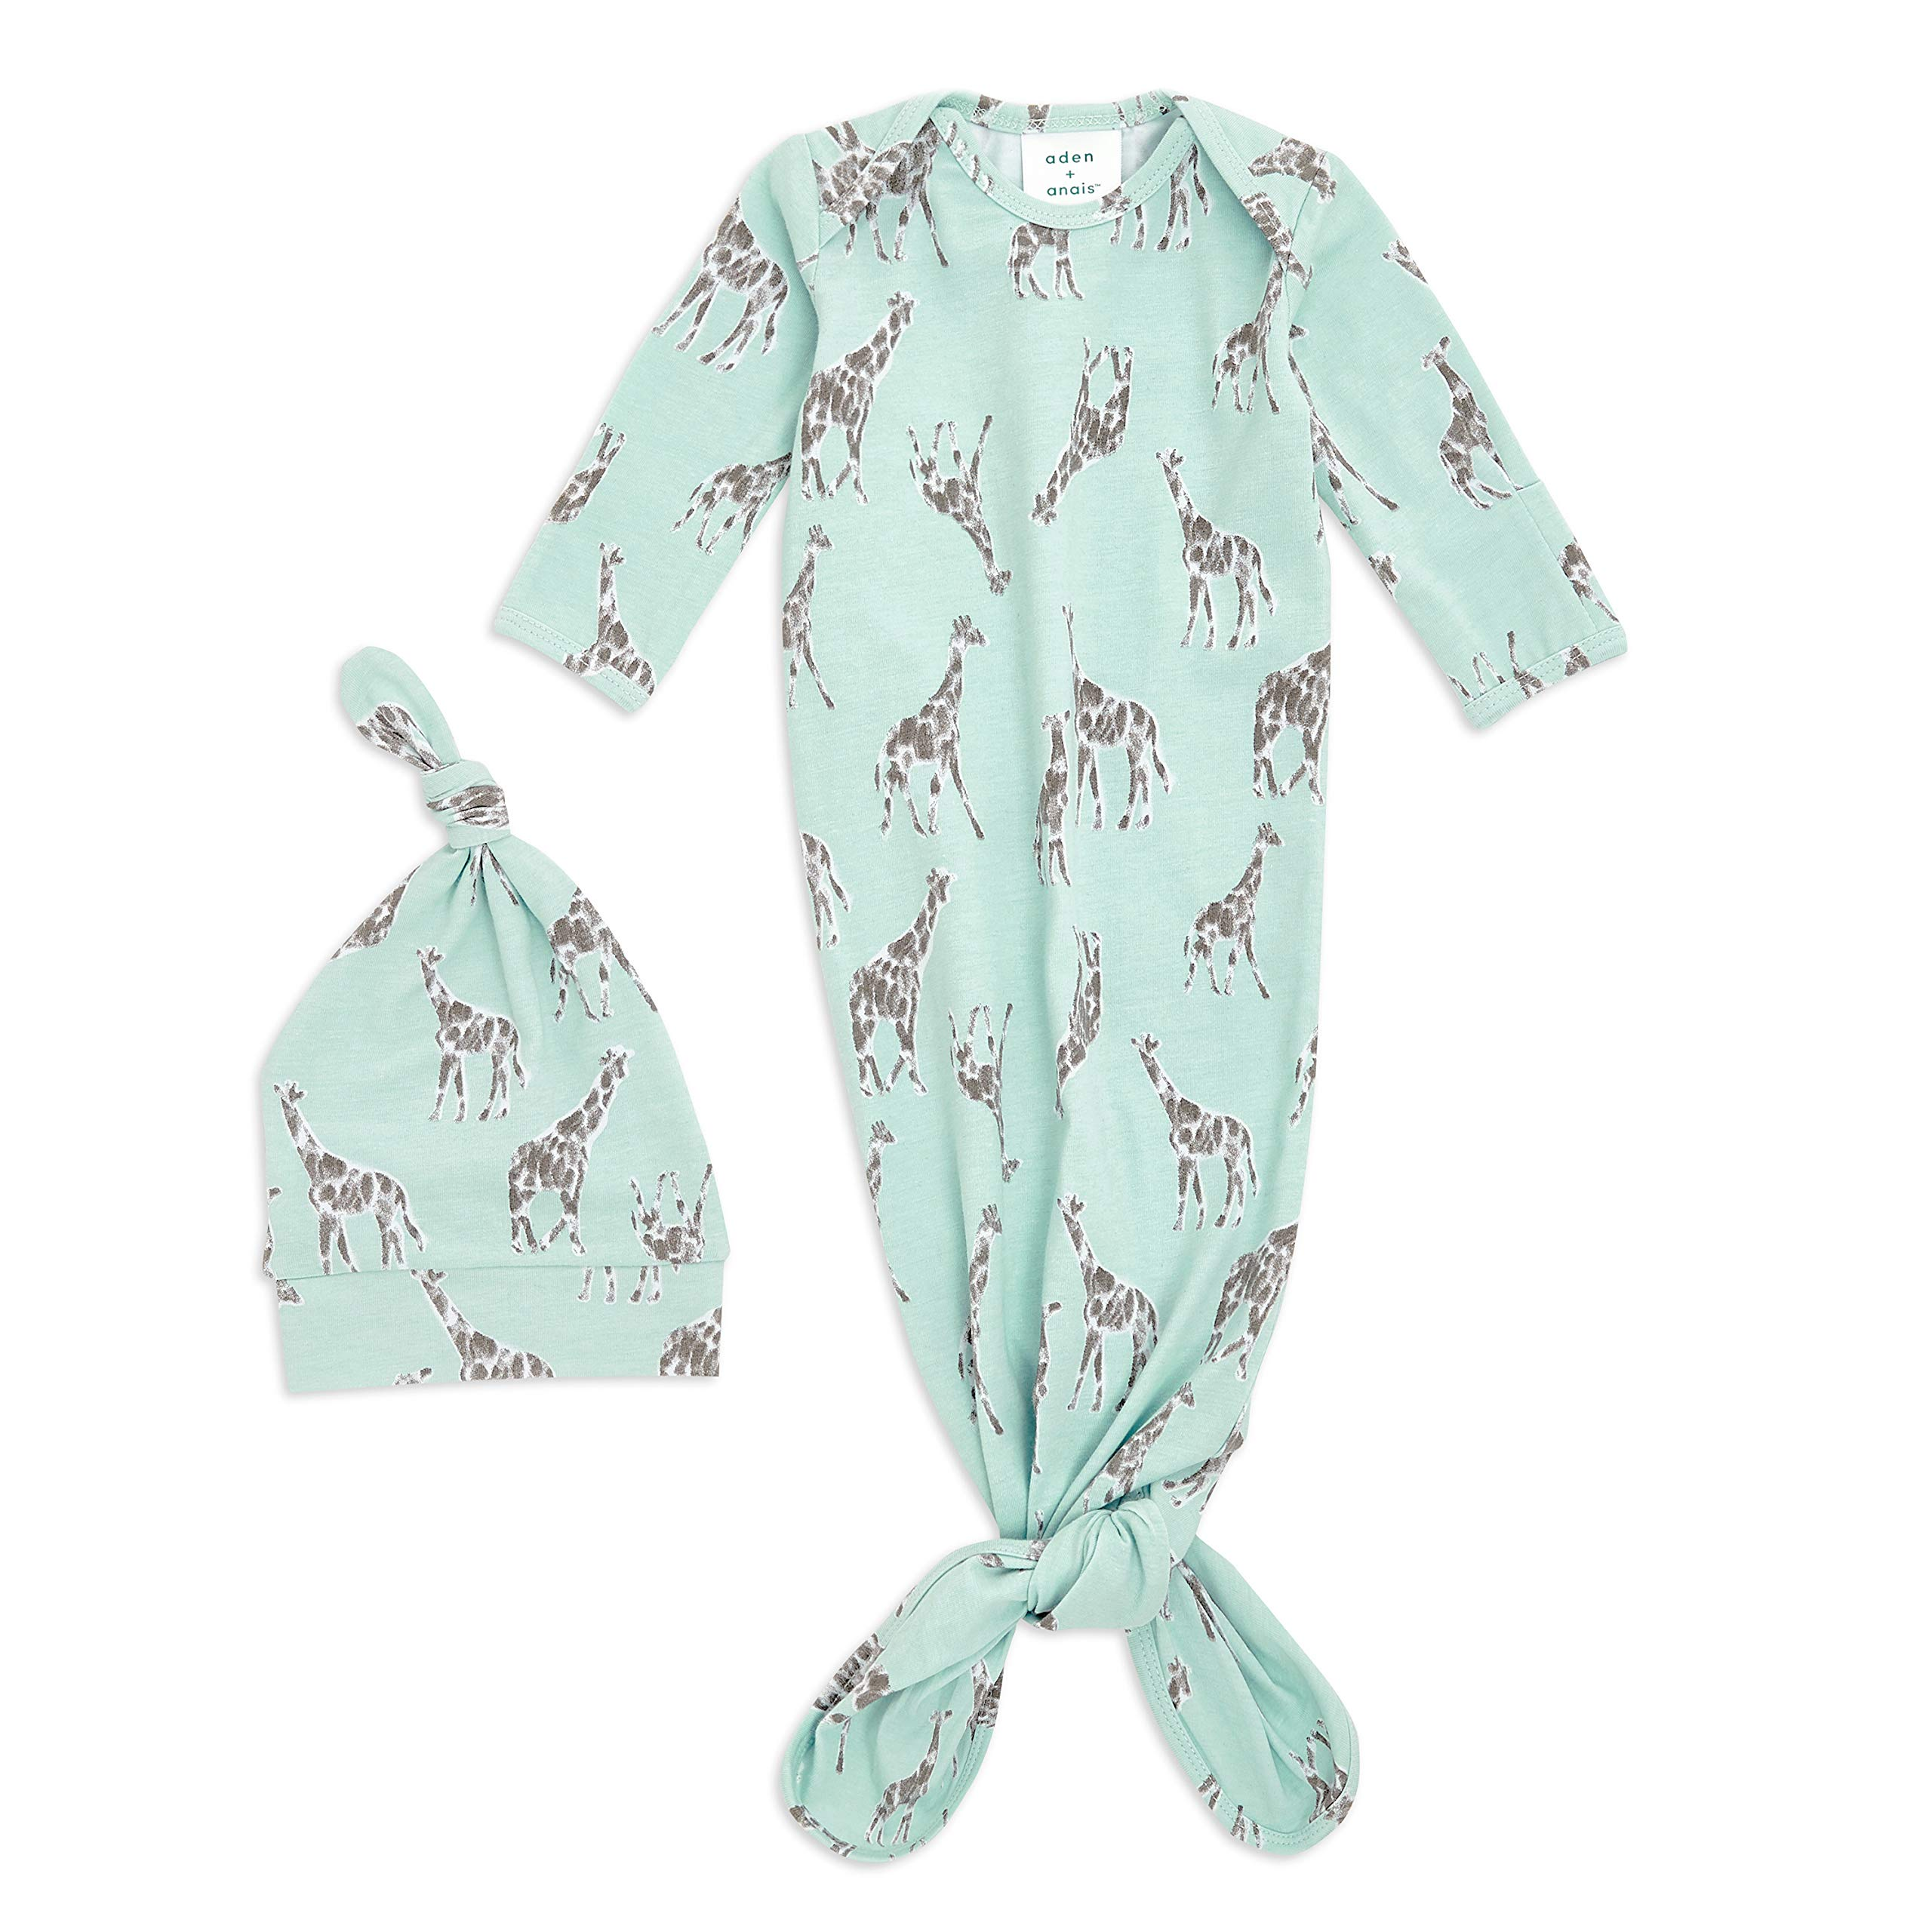 aden + anais Comfort Knit Knotted Newborn Baby Gown and Hat, Super Soft Cotton with Spandex, Infant Gown with Fold Over Mitten Cuffs, 2 Piece Set, 0-3 Months, Jade Giraffes